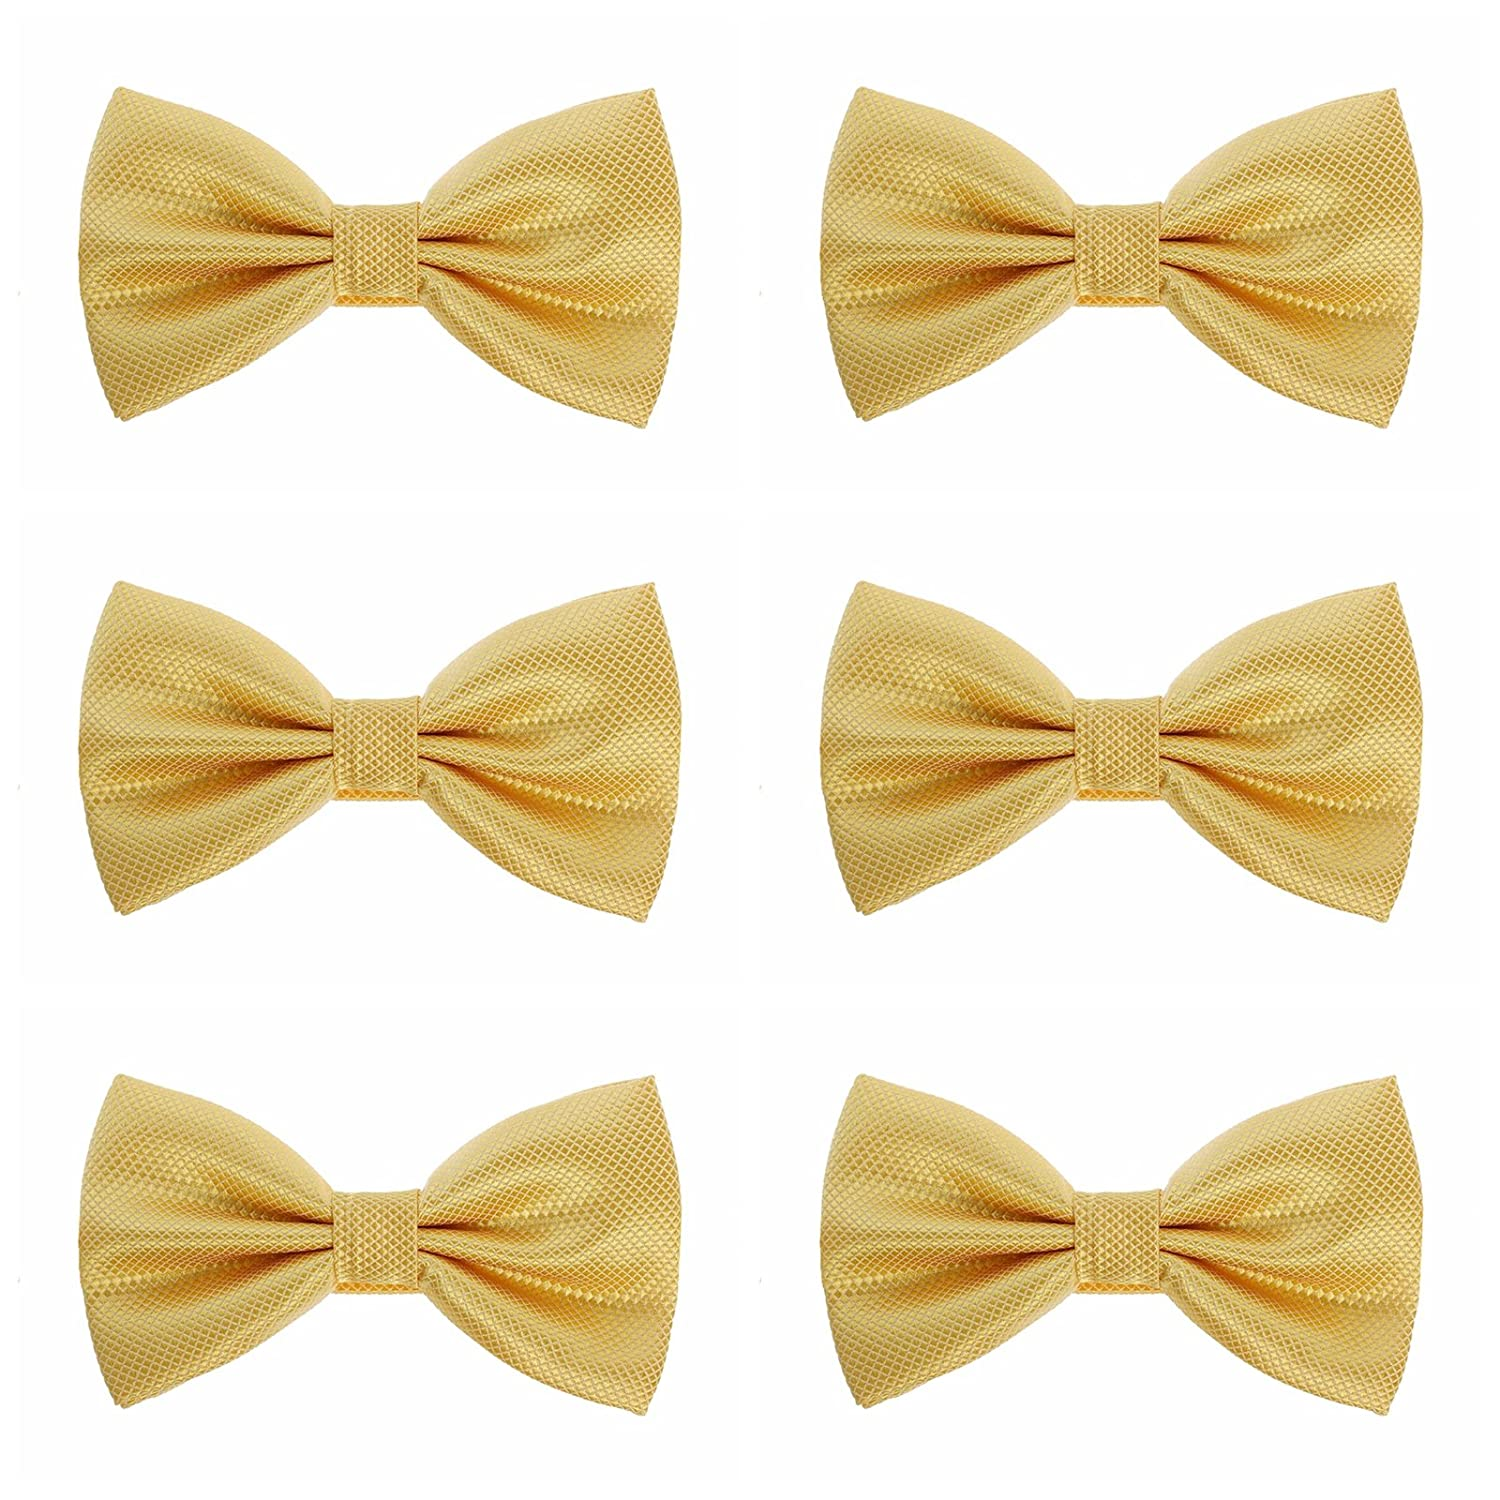 Mens Boys Formal Bow Ties - 6 Pack of Solid Color Adjustable Pre Tied Bowties (Gold)